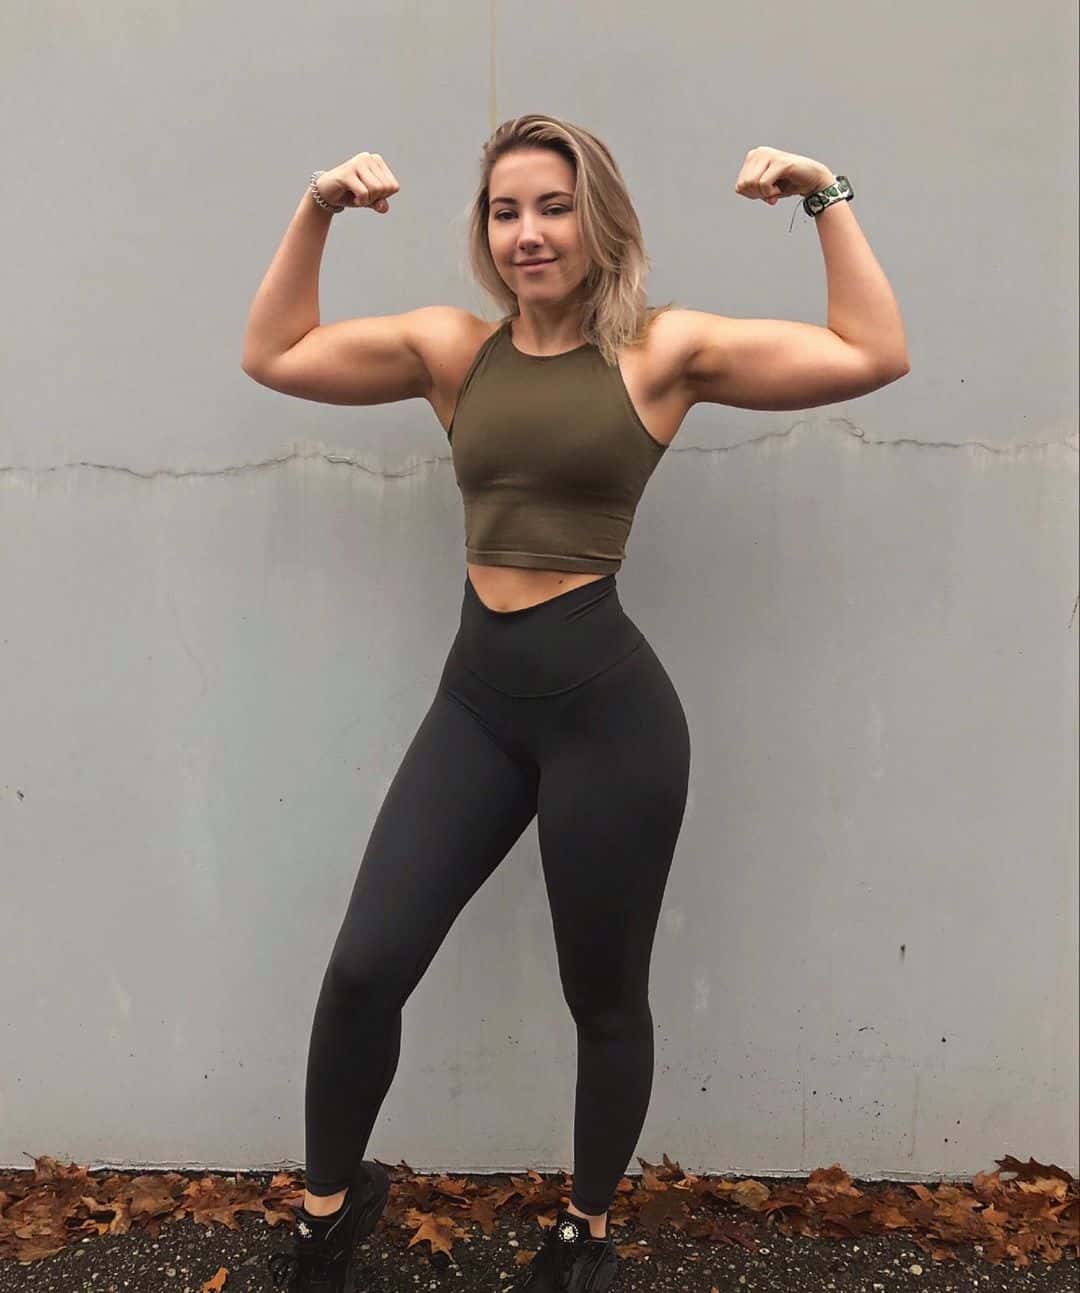 Showing off her muscles | HOT Girls In Yoga Pants | Best